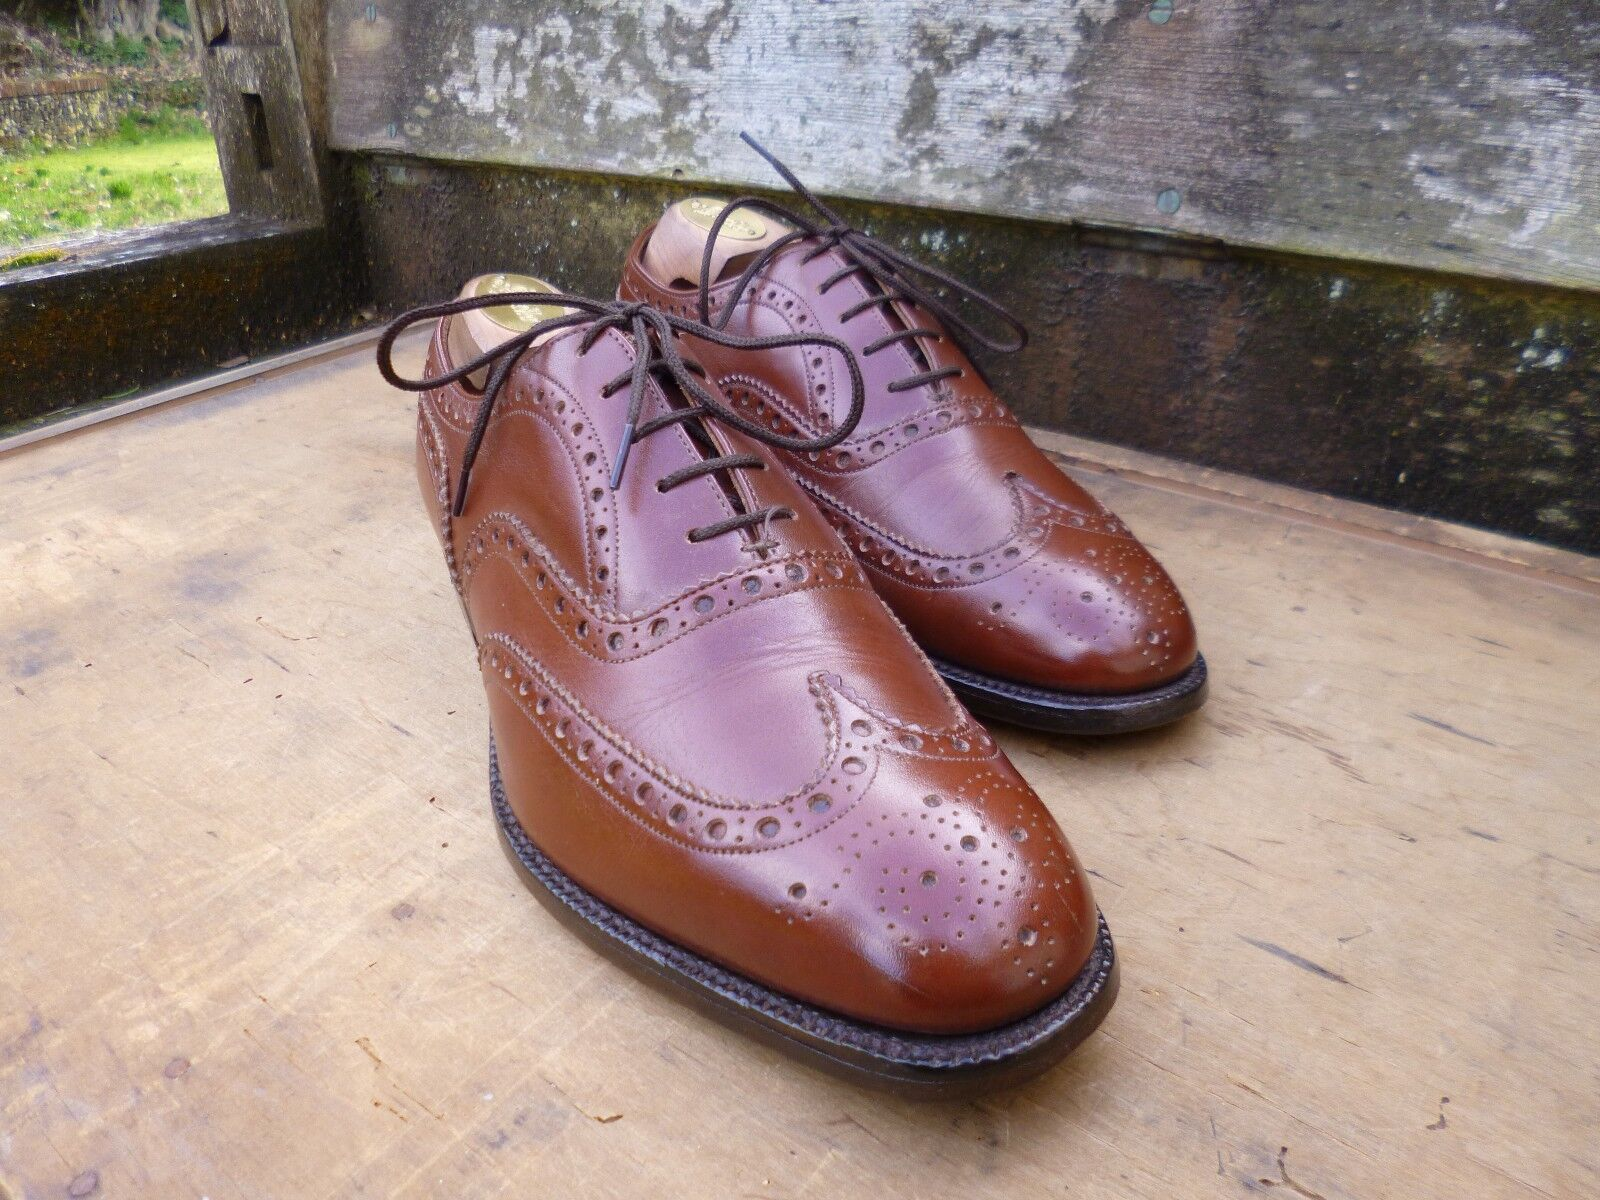 CHURCH BROGUES – braun   TAN - UK 7 – CHETWYND - EXCELLENT-AS WORN BY JAMES BOND